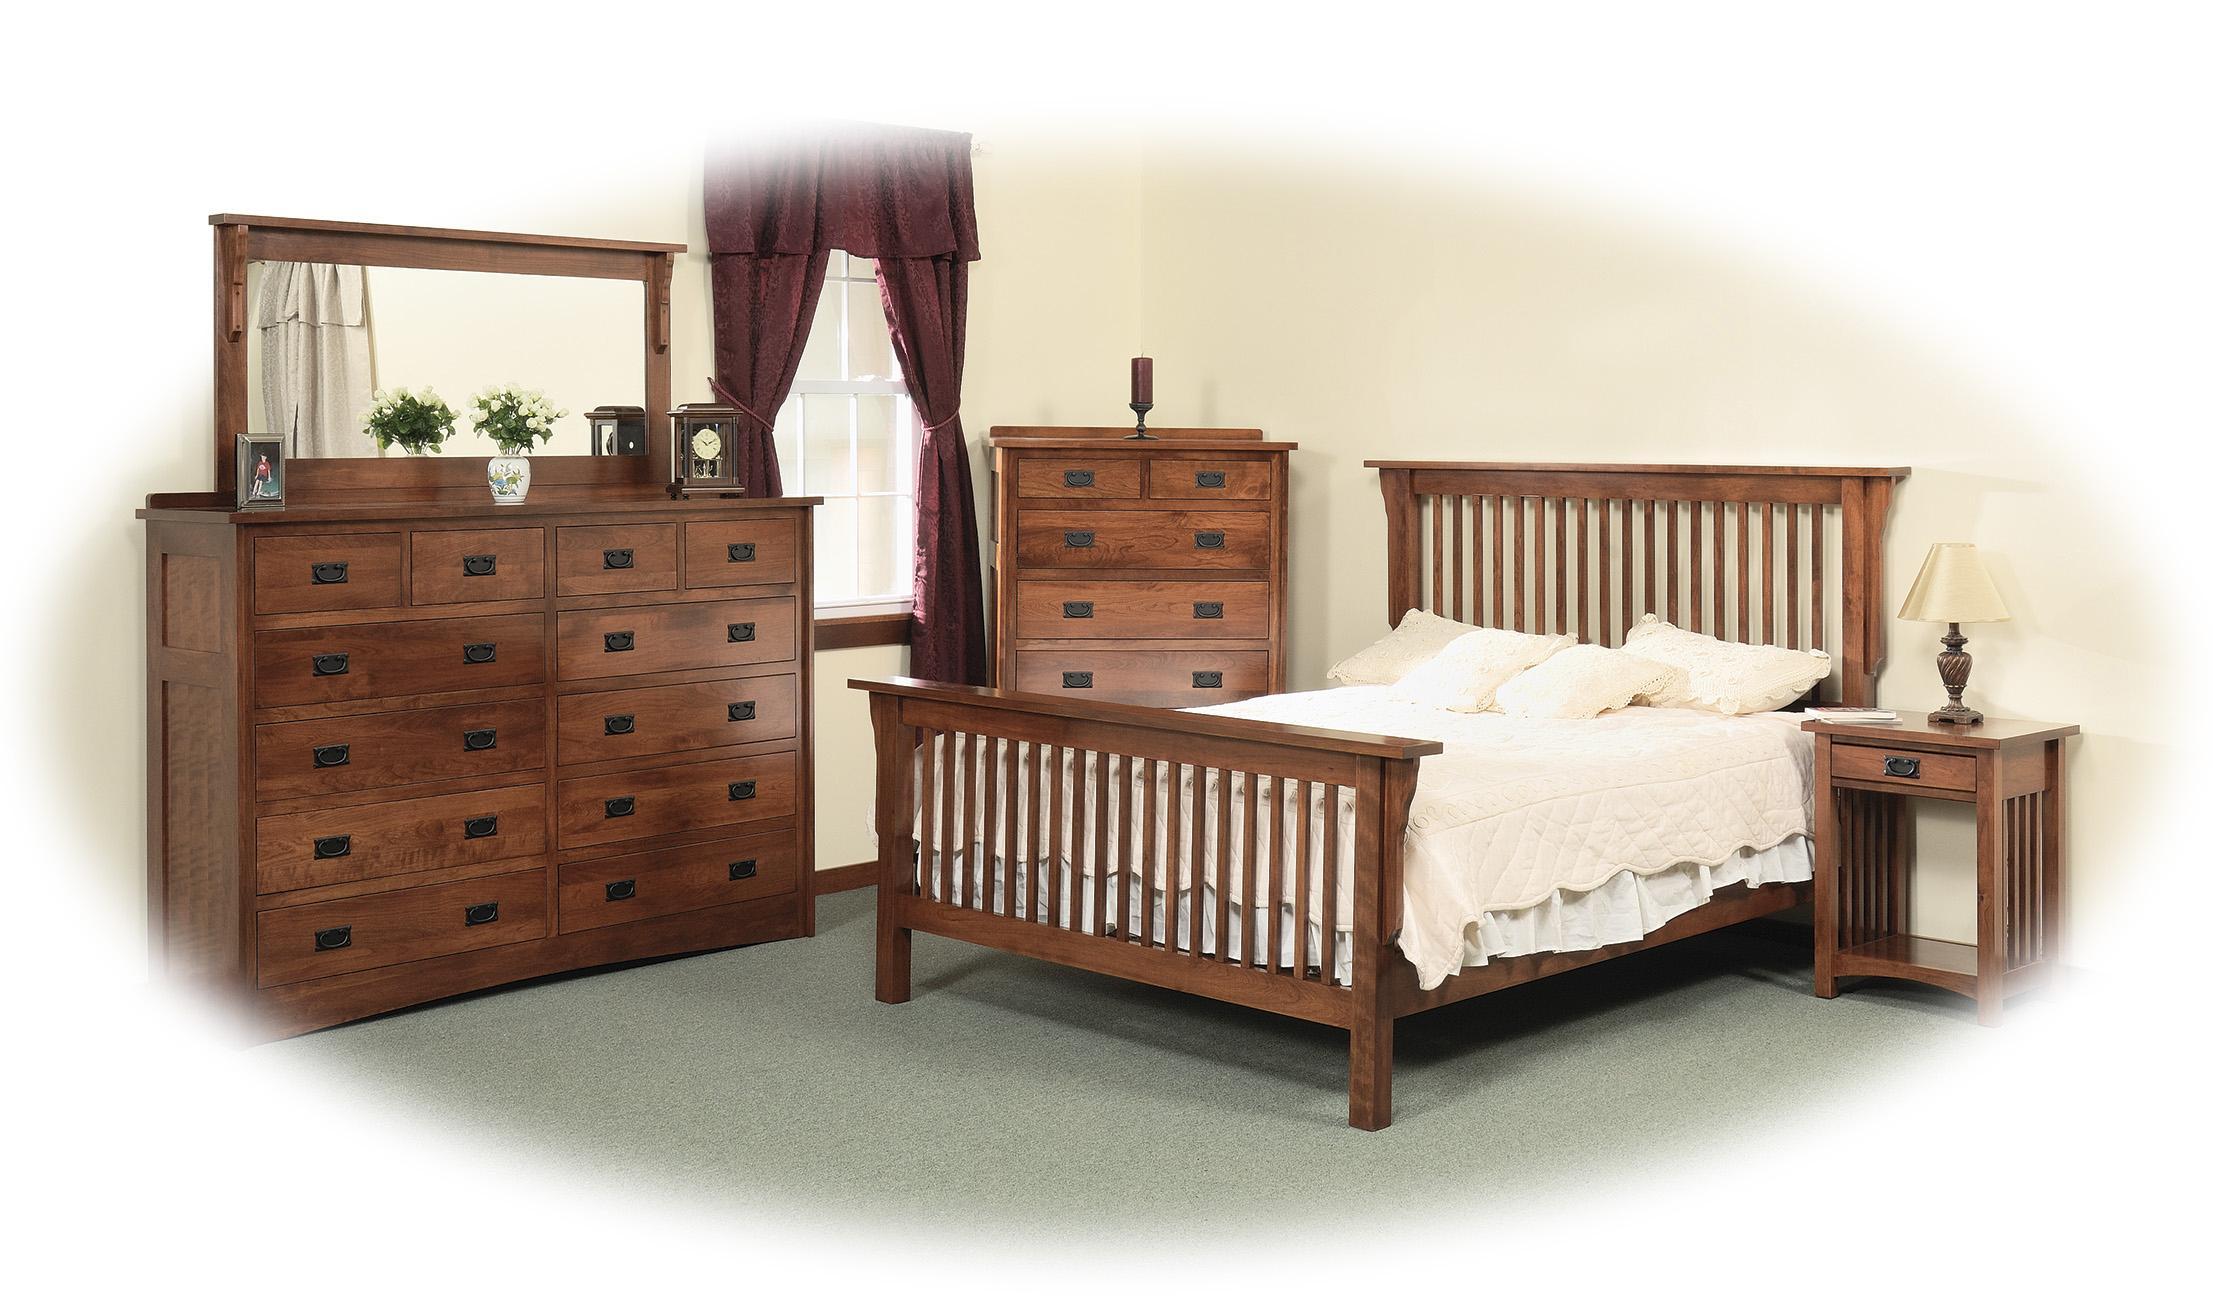 queen frame bed - Wood Frame Bed